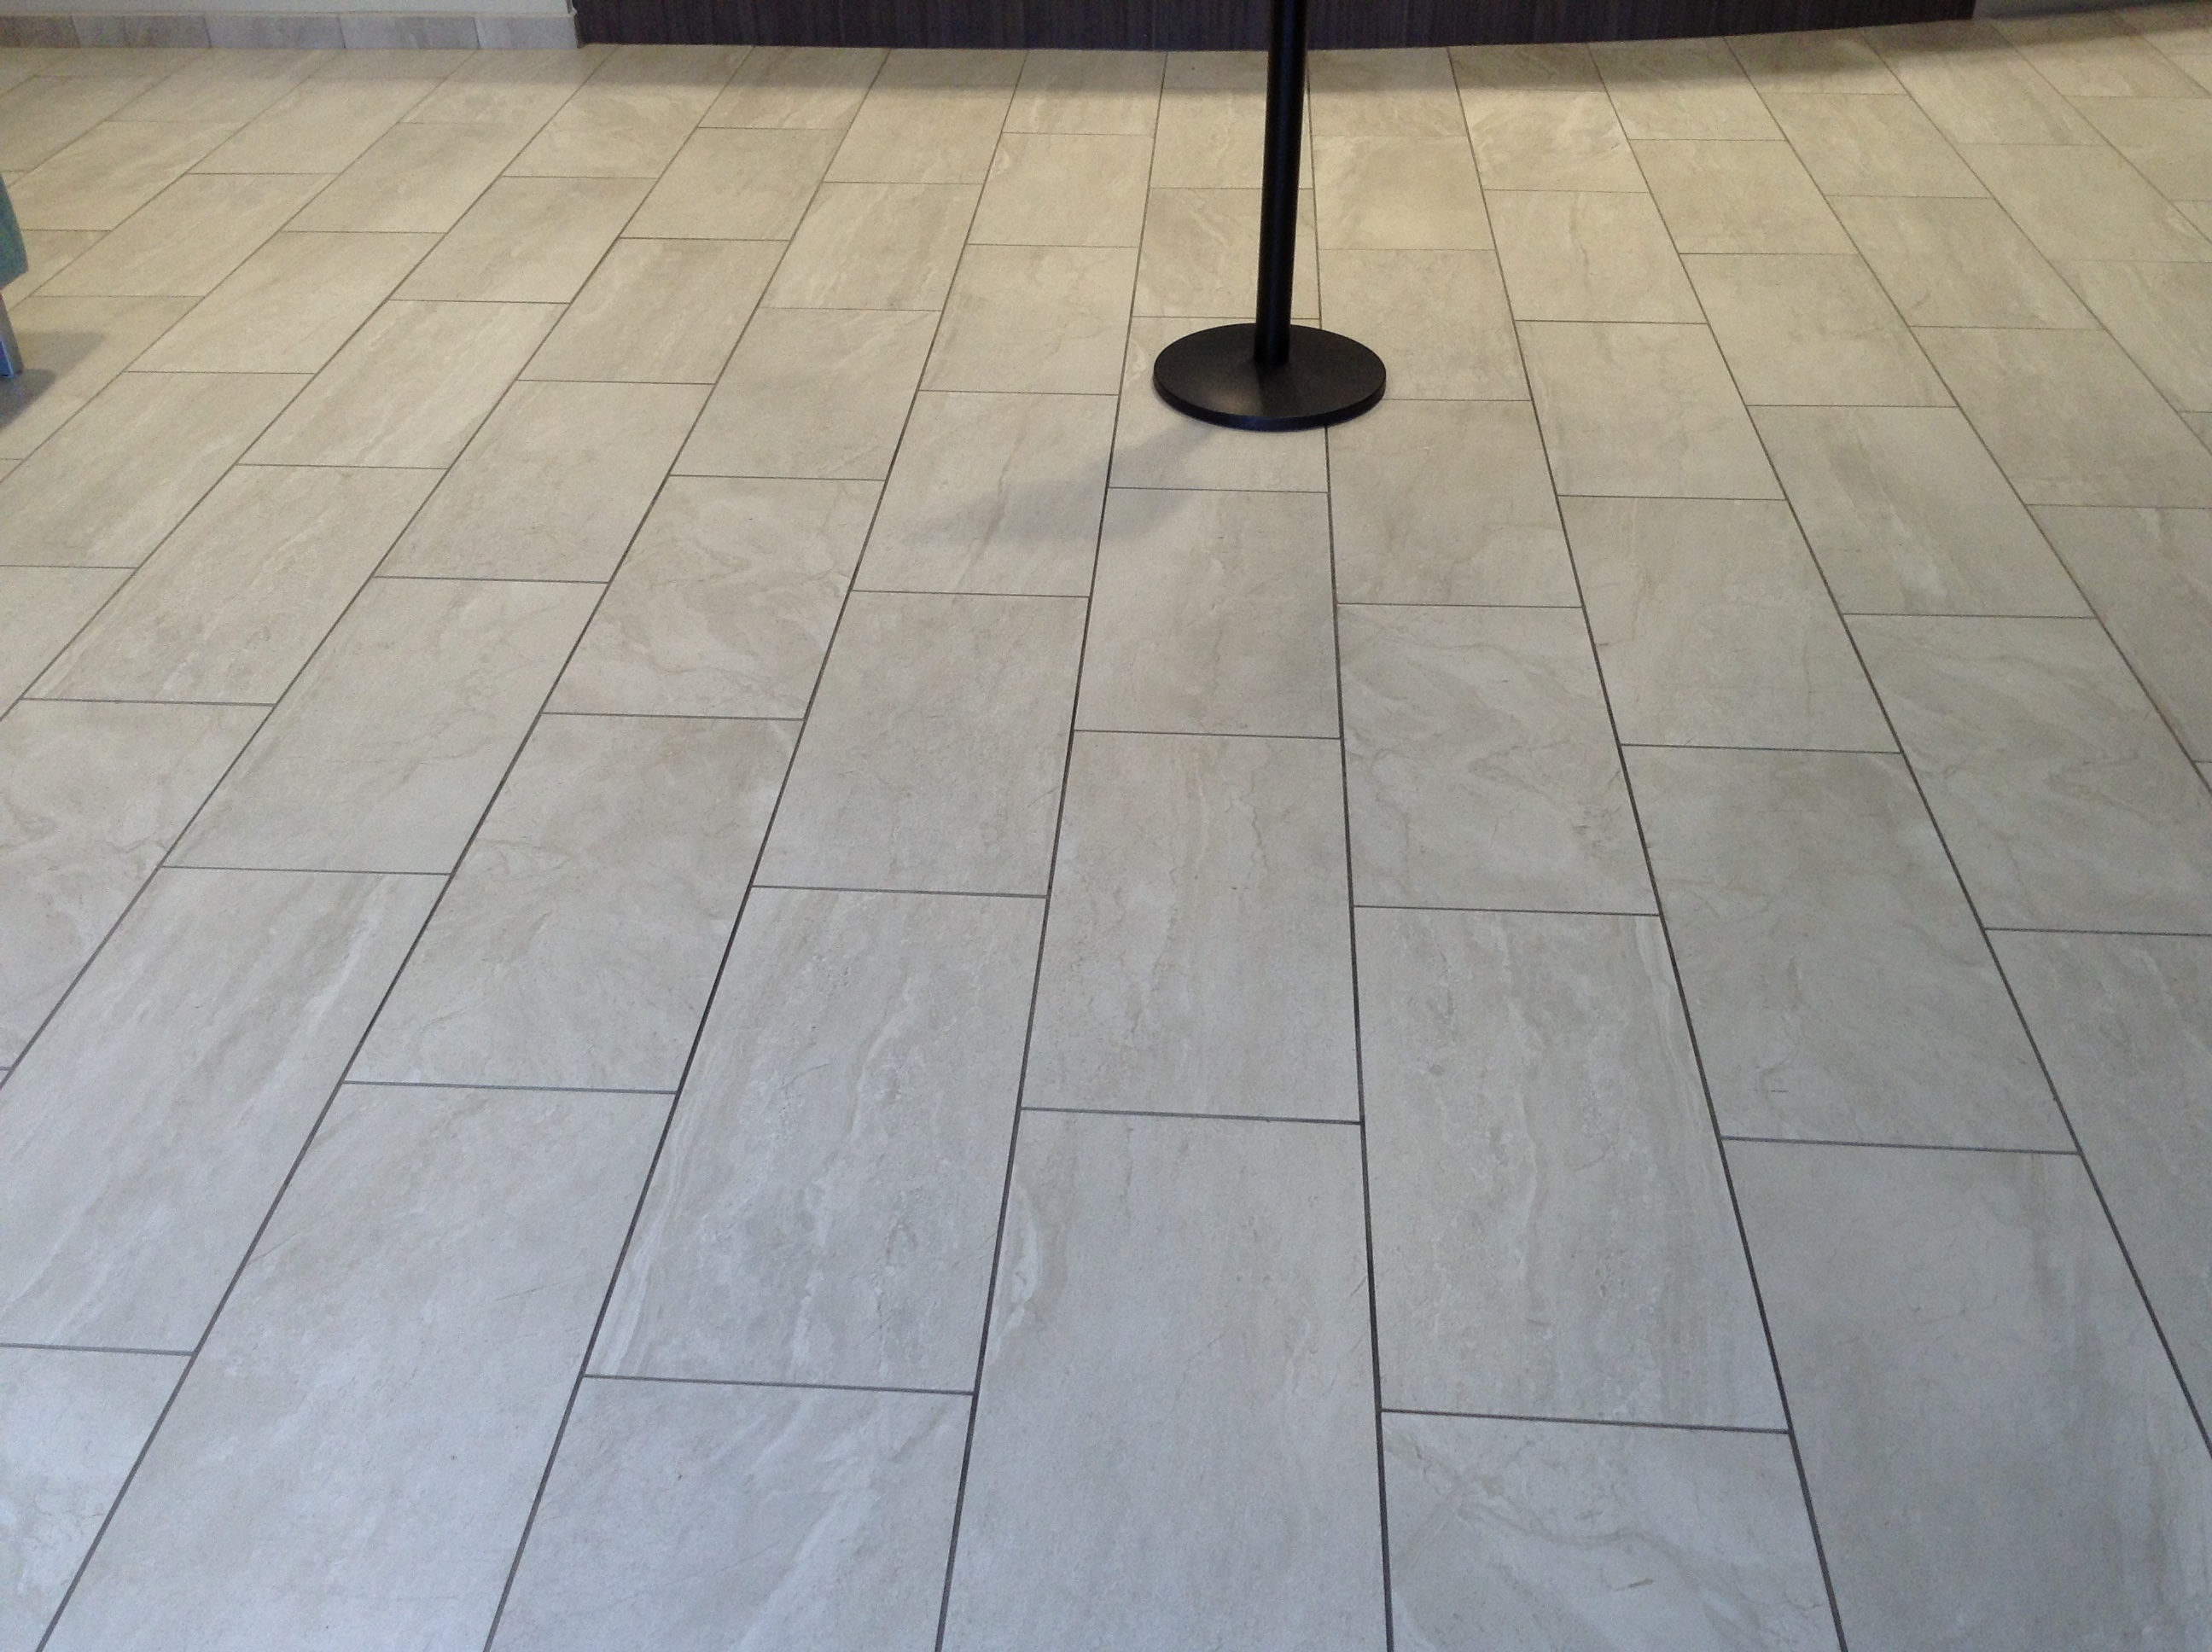 Commercial tile installations commercial flooring third offset pattern dailygadgetfo Image collections